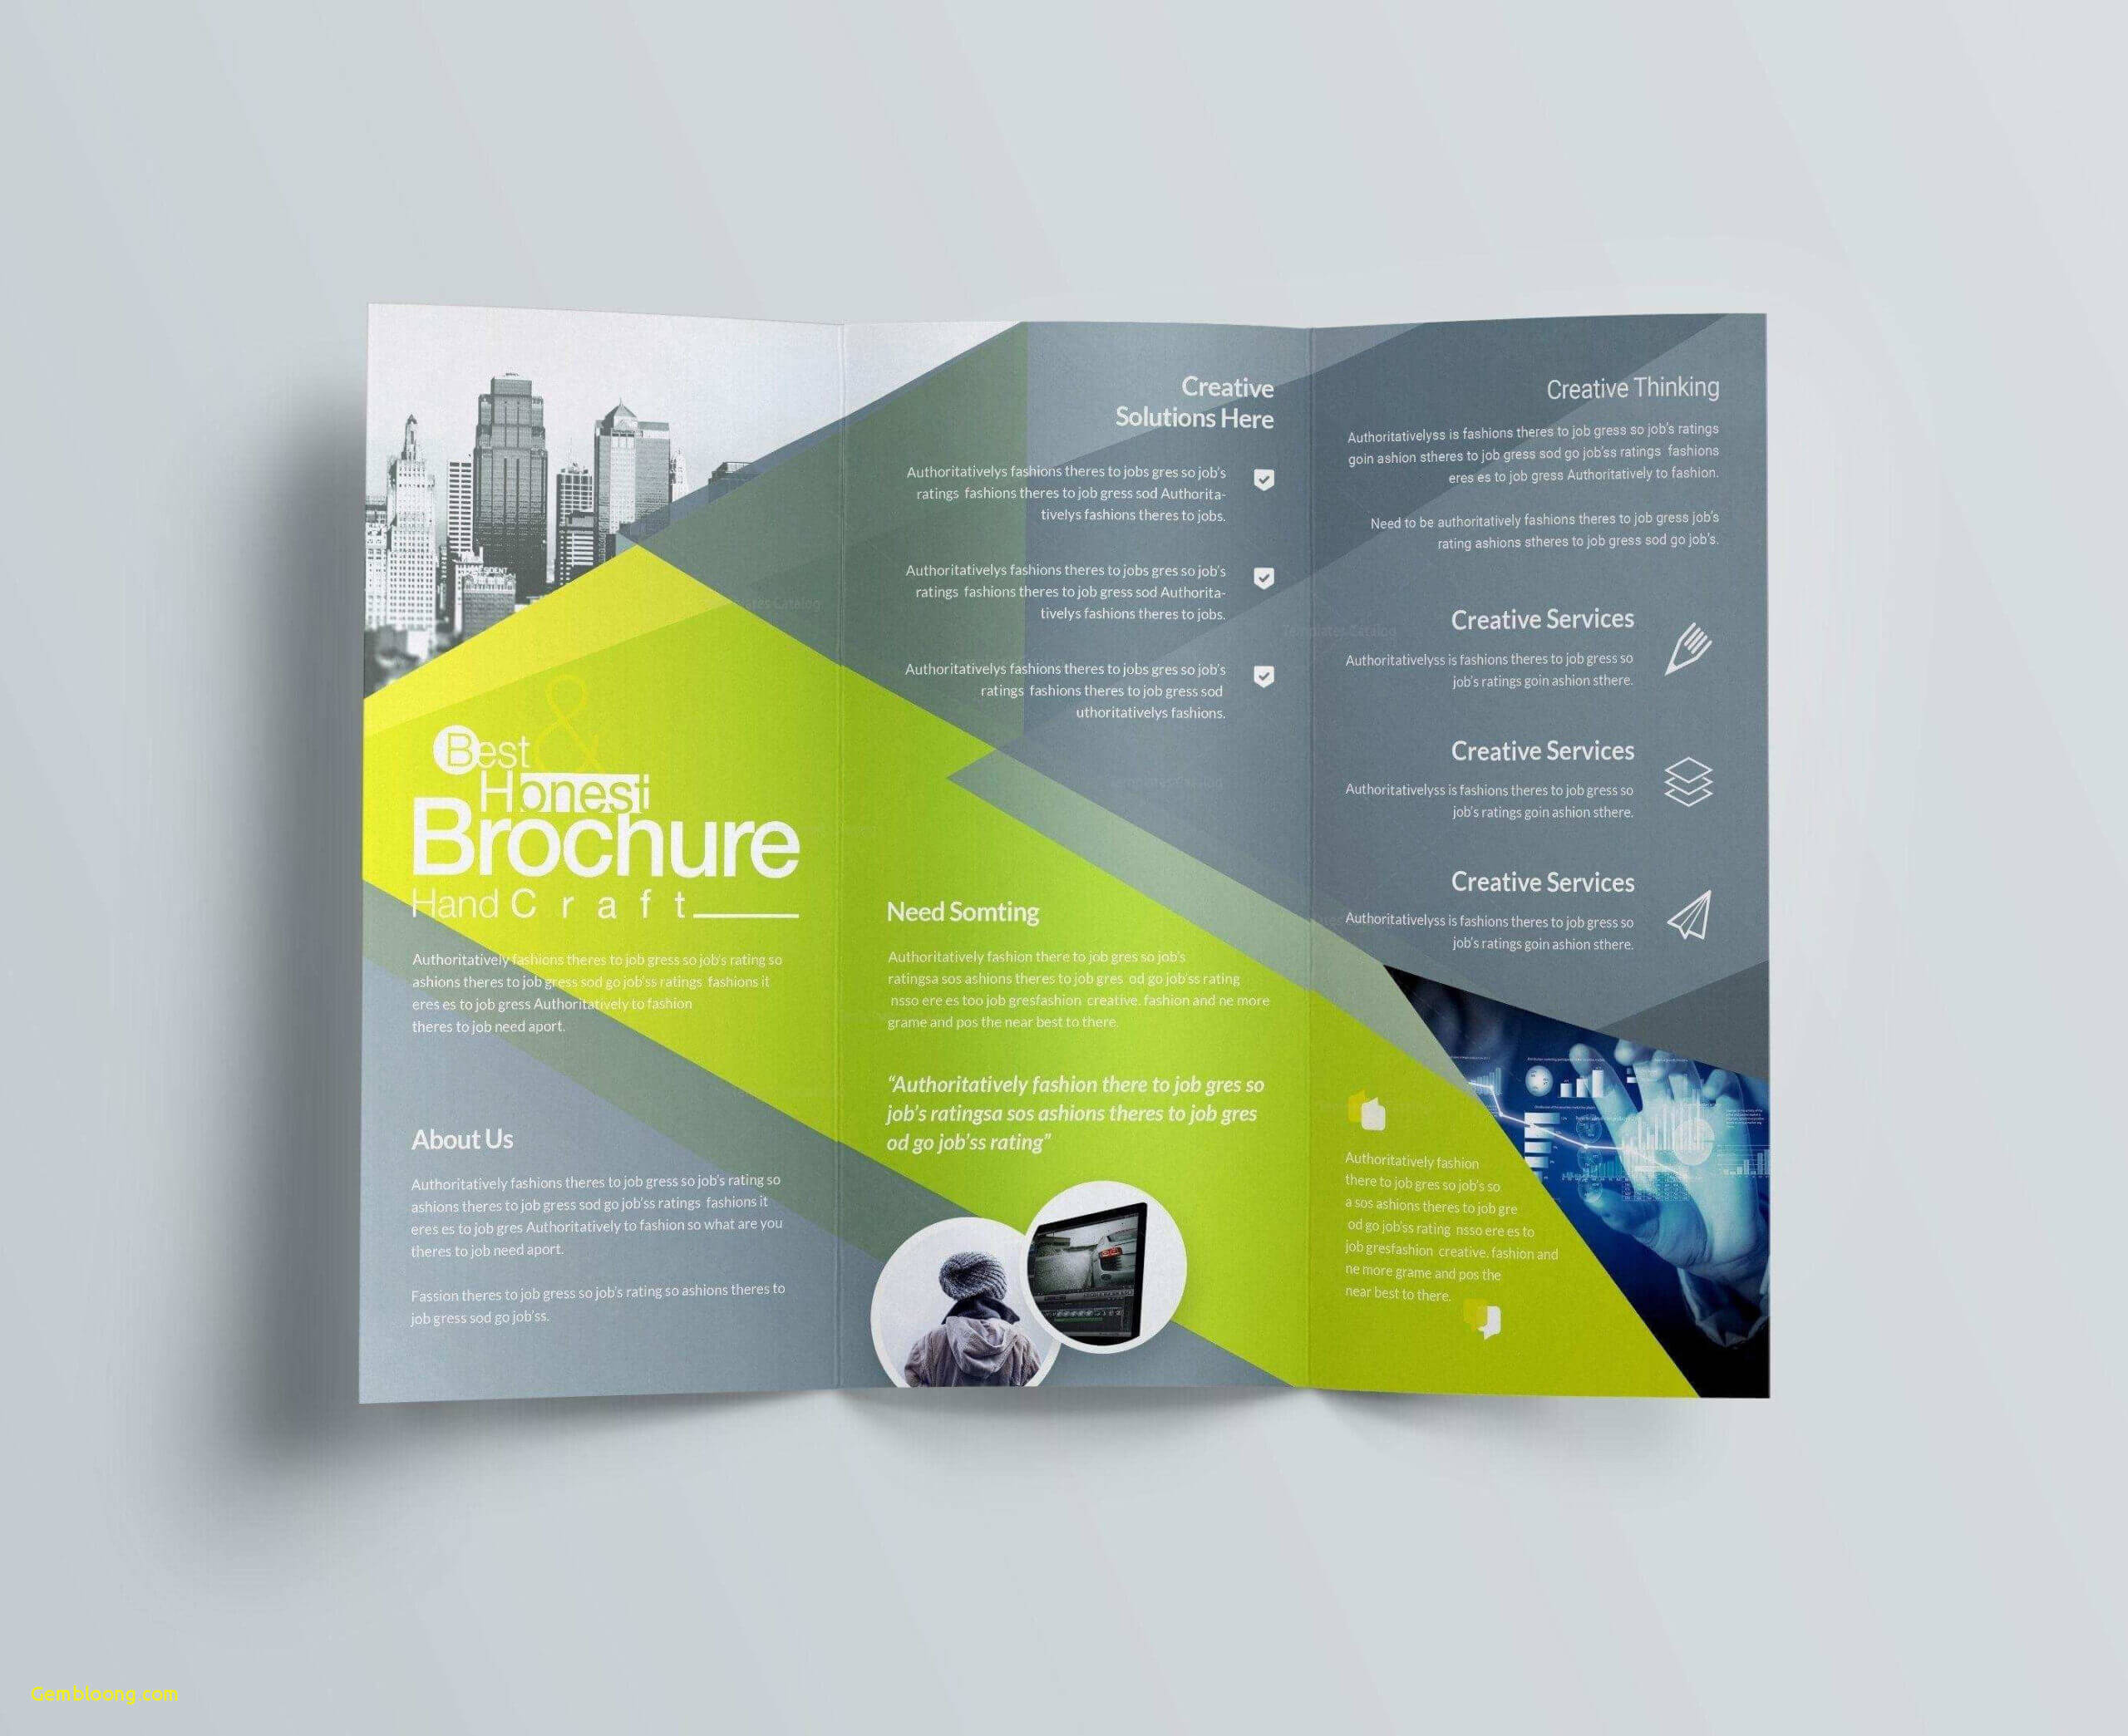 046 Image Ms Publisher Booklet Template Beautiful Ideas Free In Free Template For Brochure Microsoft Office